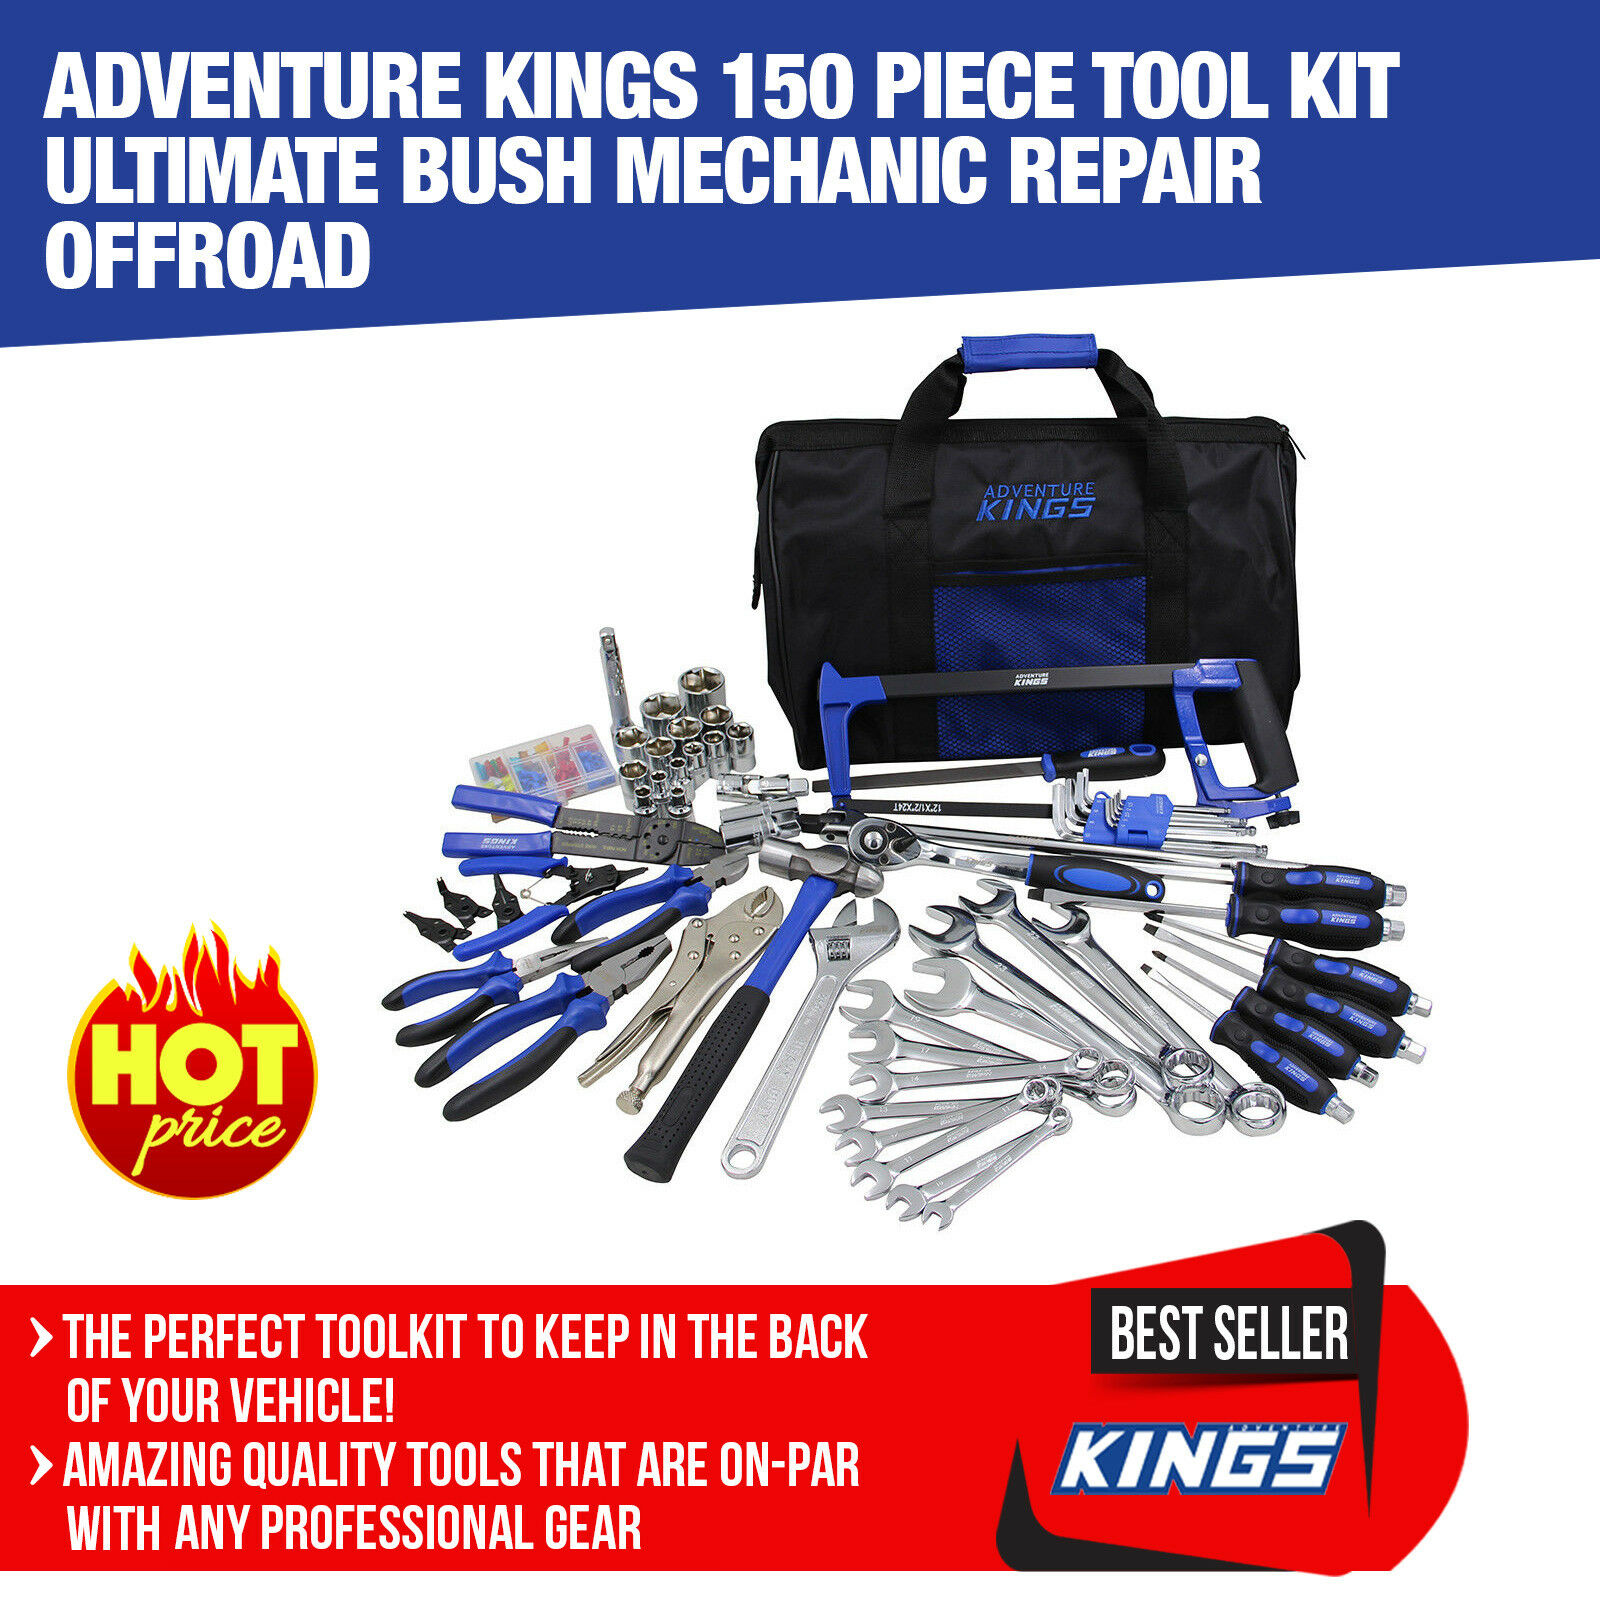 Adventure Kings 150 Piece Tool Kit Ultimate Bush Mechanic Repair Offroad